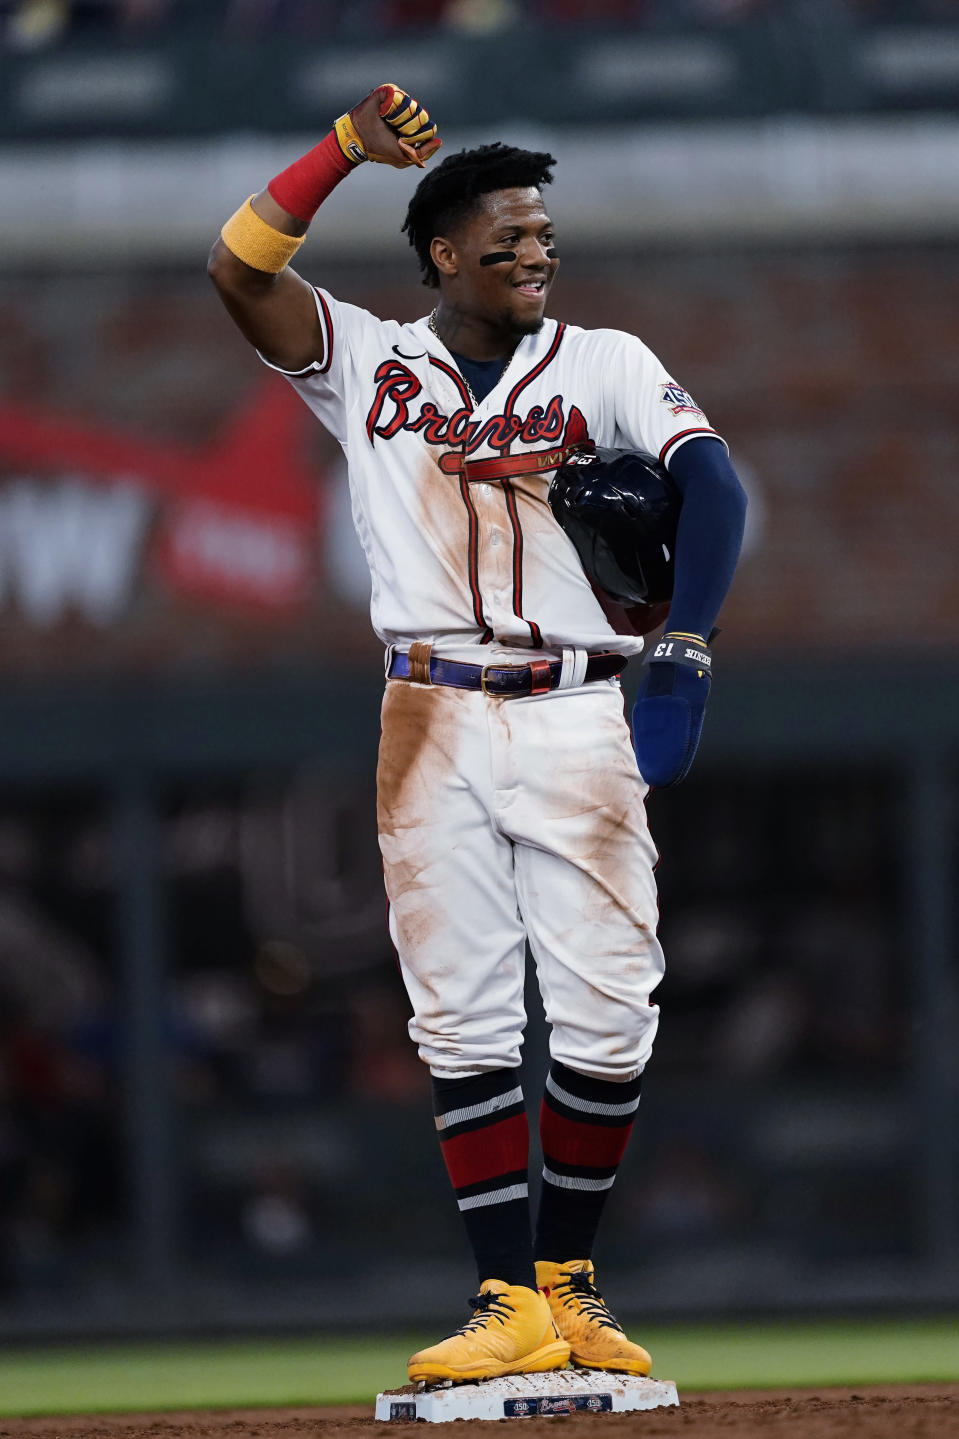 Atlanta Braves' Ronald Acuna Jr. reacts after a video review confirmed he was safe with a steal of second base in the sixth inning of the team's baseball game against the St. Louis Cardinals on Thursday, June 17, 2021, in Atlanta. (AP Photo/John Bazemore)